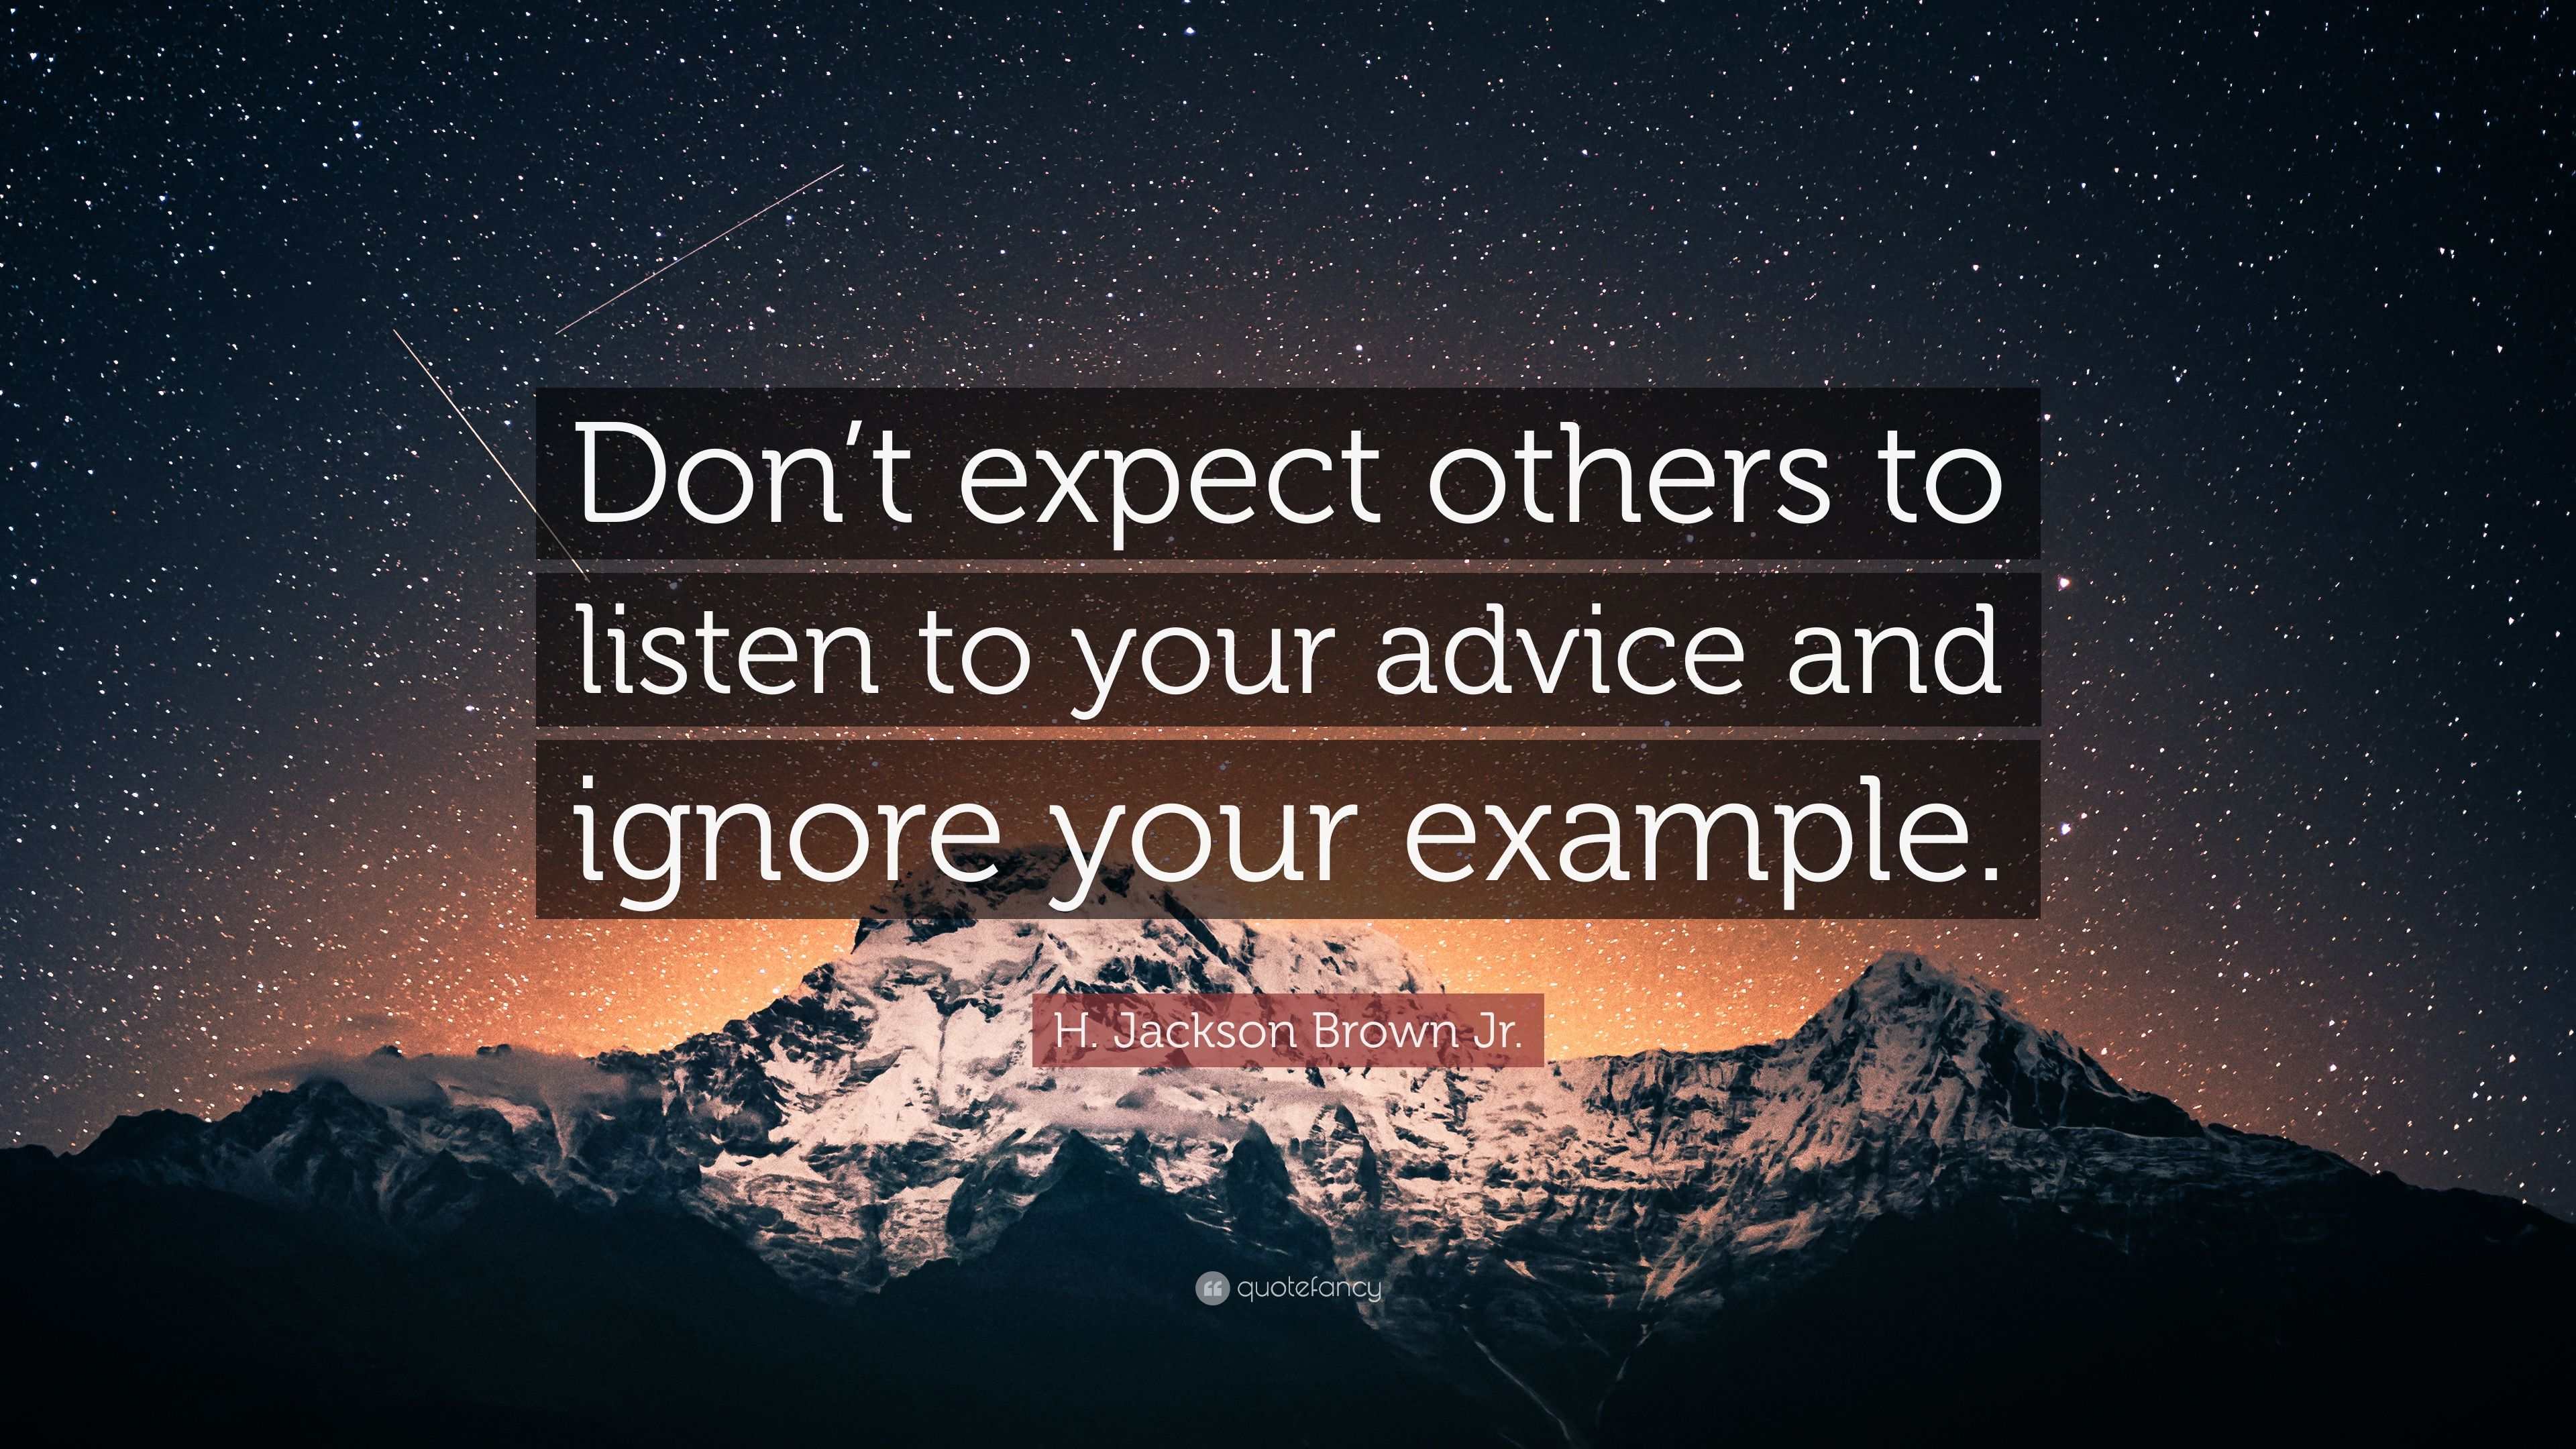 H Jackson Brown Jr Quote Dont Expect Others To Listen To Your